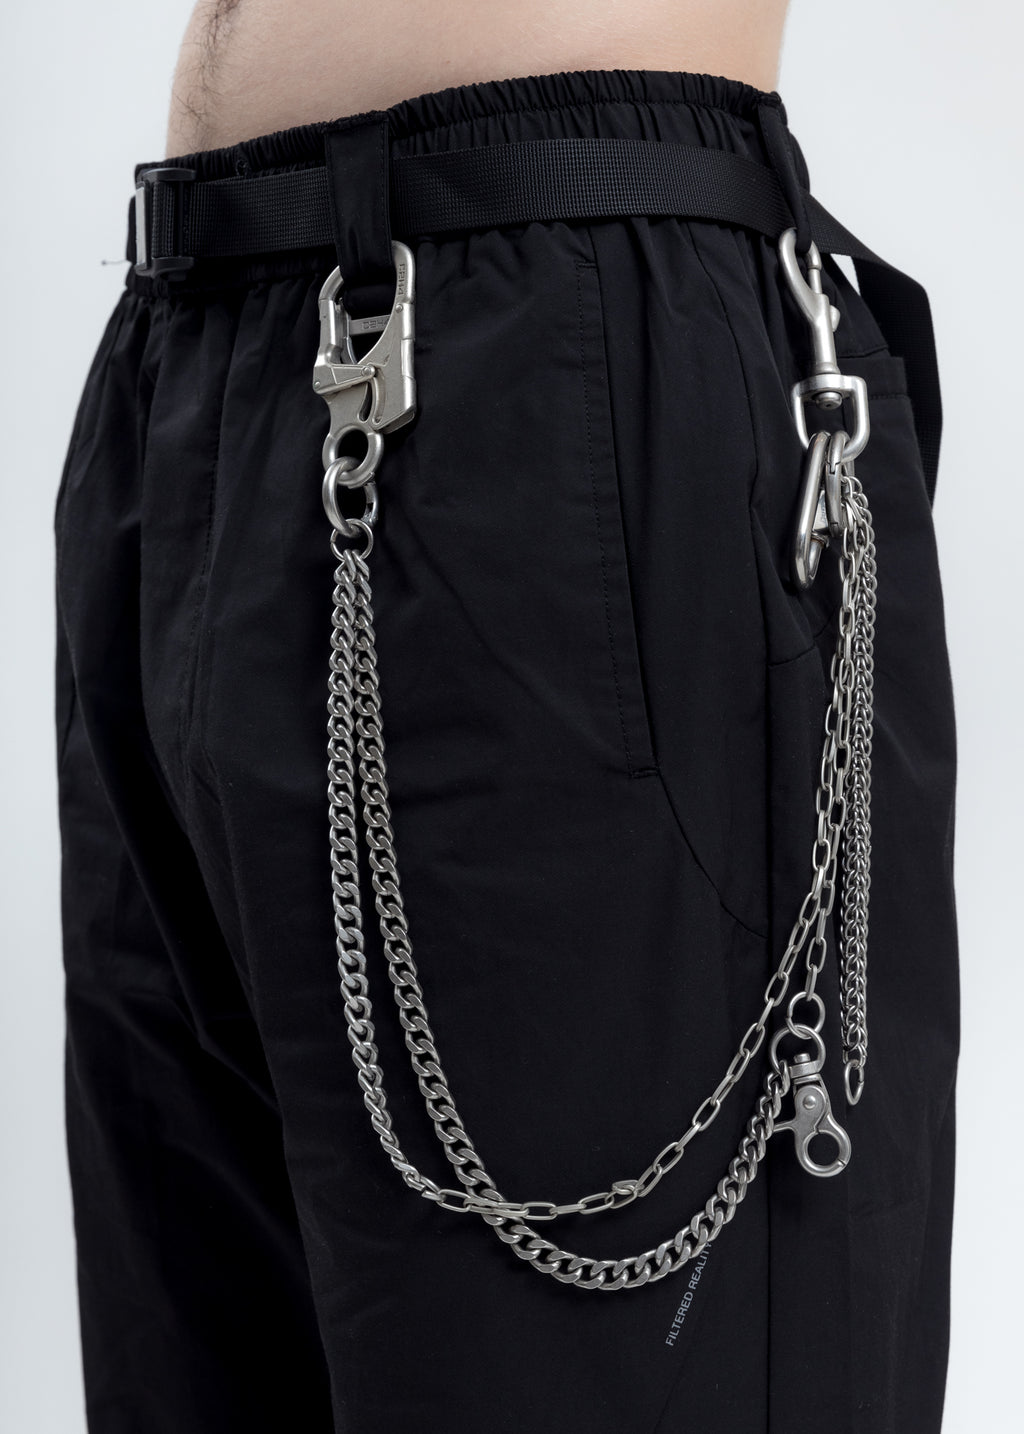 Multi Metal Combined Pants Chain